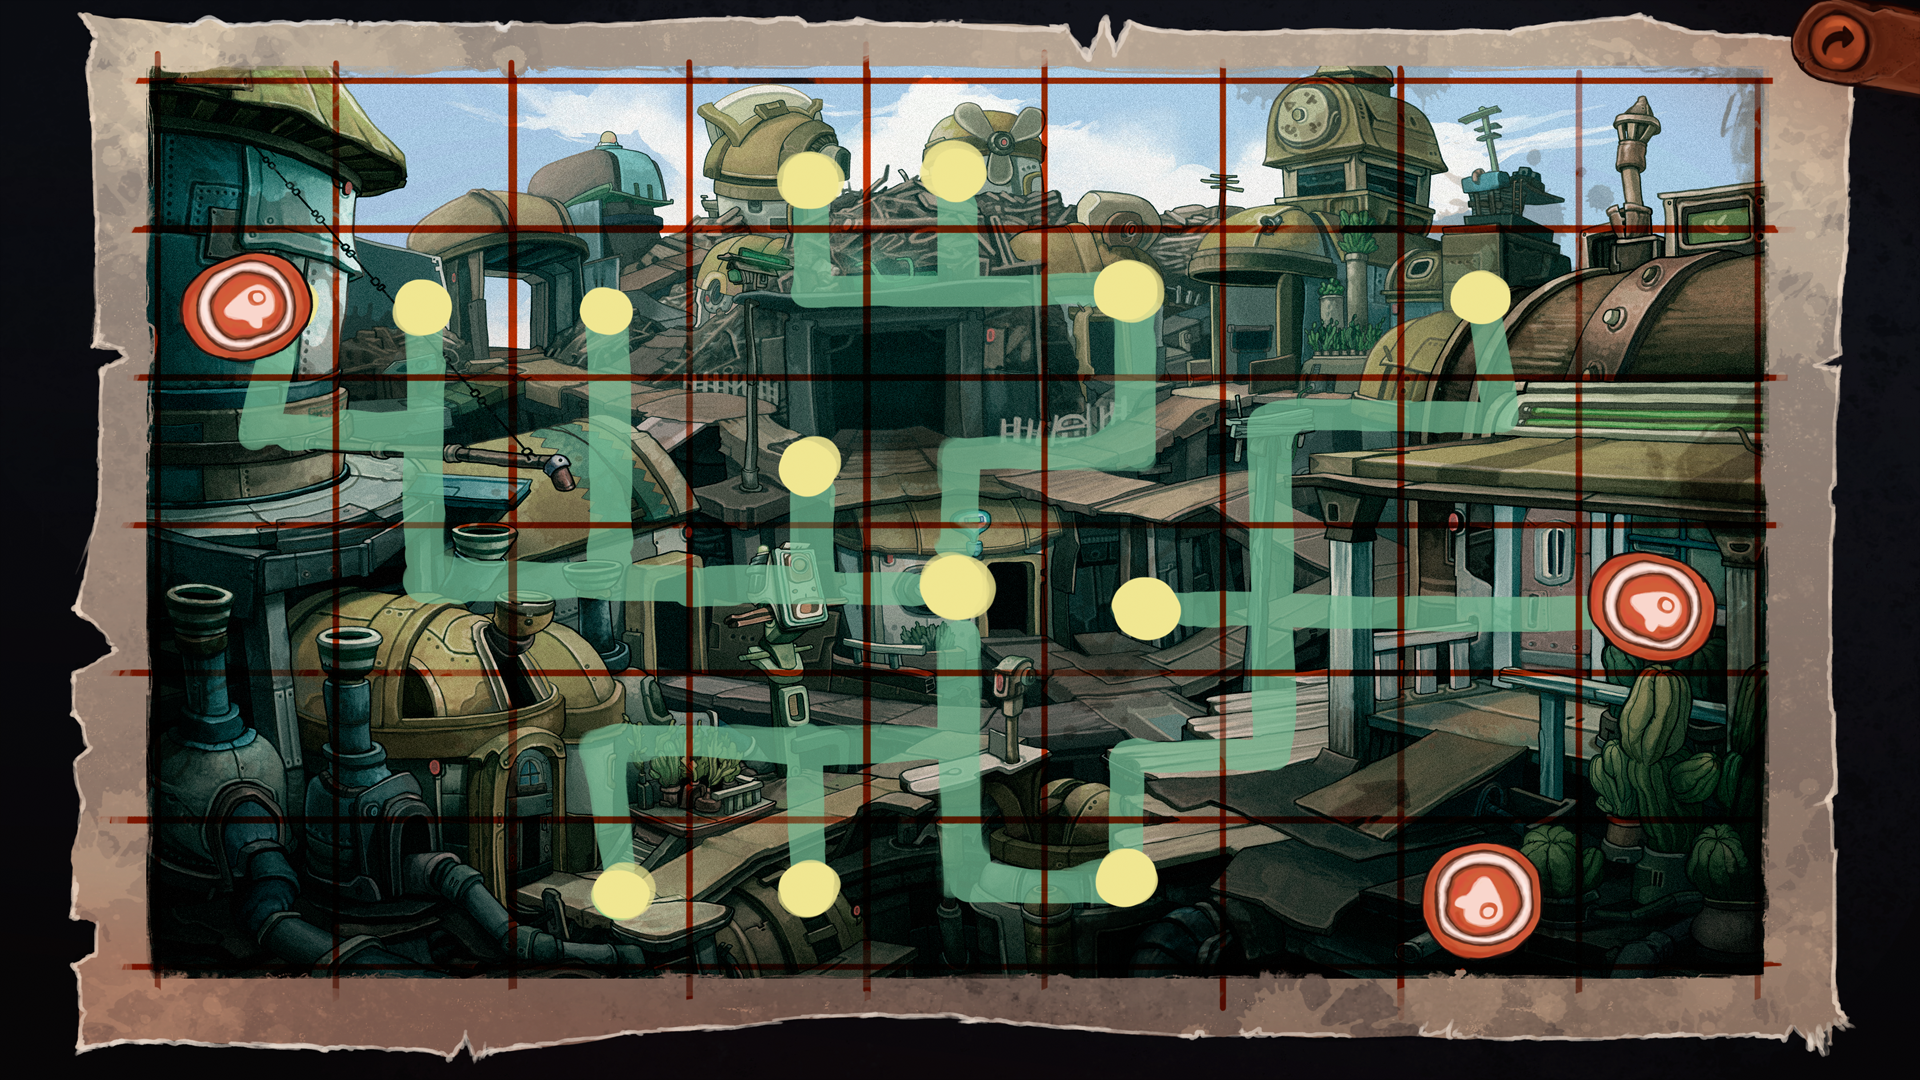 Deponia Windows Another puzzle